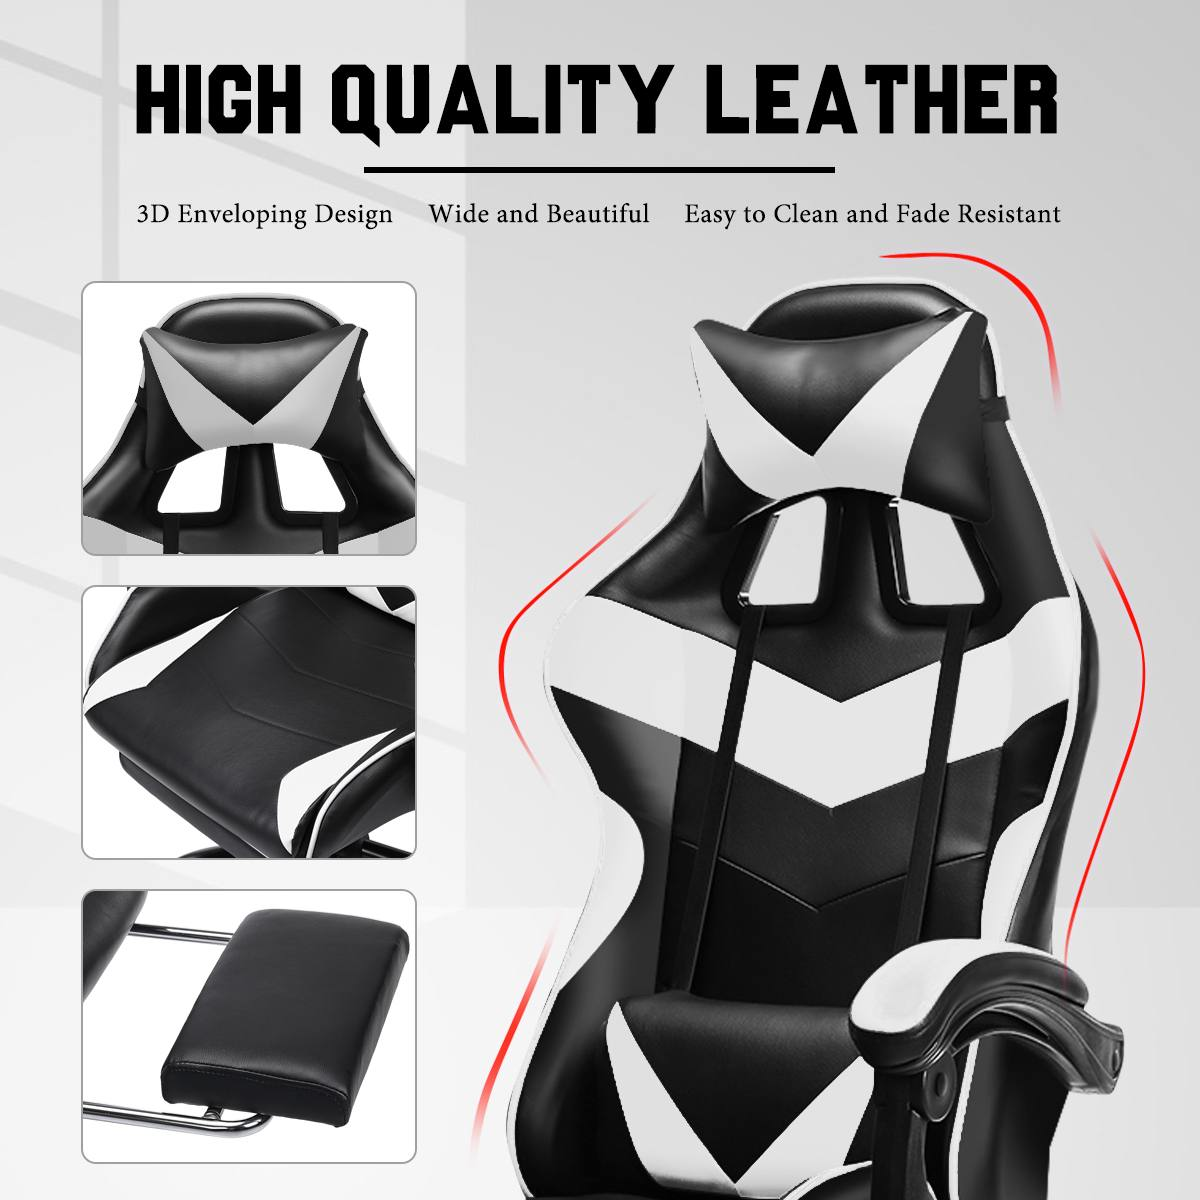 H519430c477374705bae85cc9a21a55e50 - Leather Office Gaming Chair Home Internet Cafe Racing Chair WCG Gaming Ergonomic Computer Chair Swivel Lifting Lying Gamer Chair